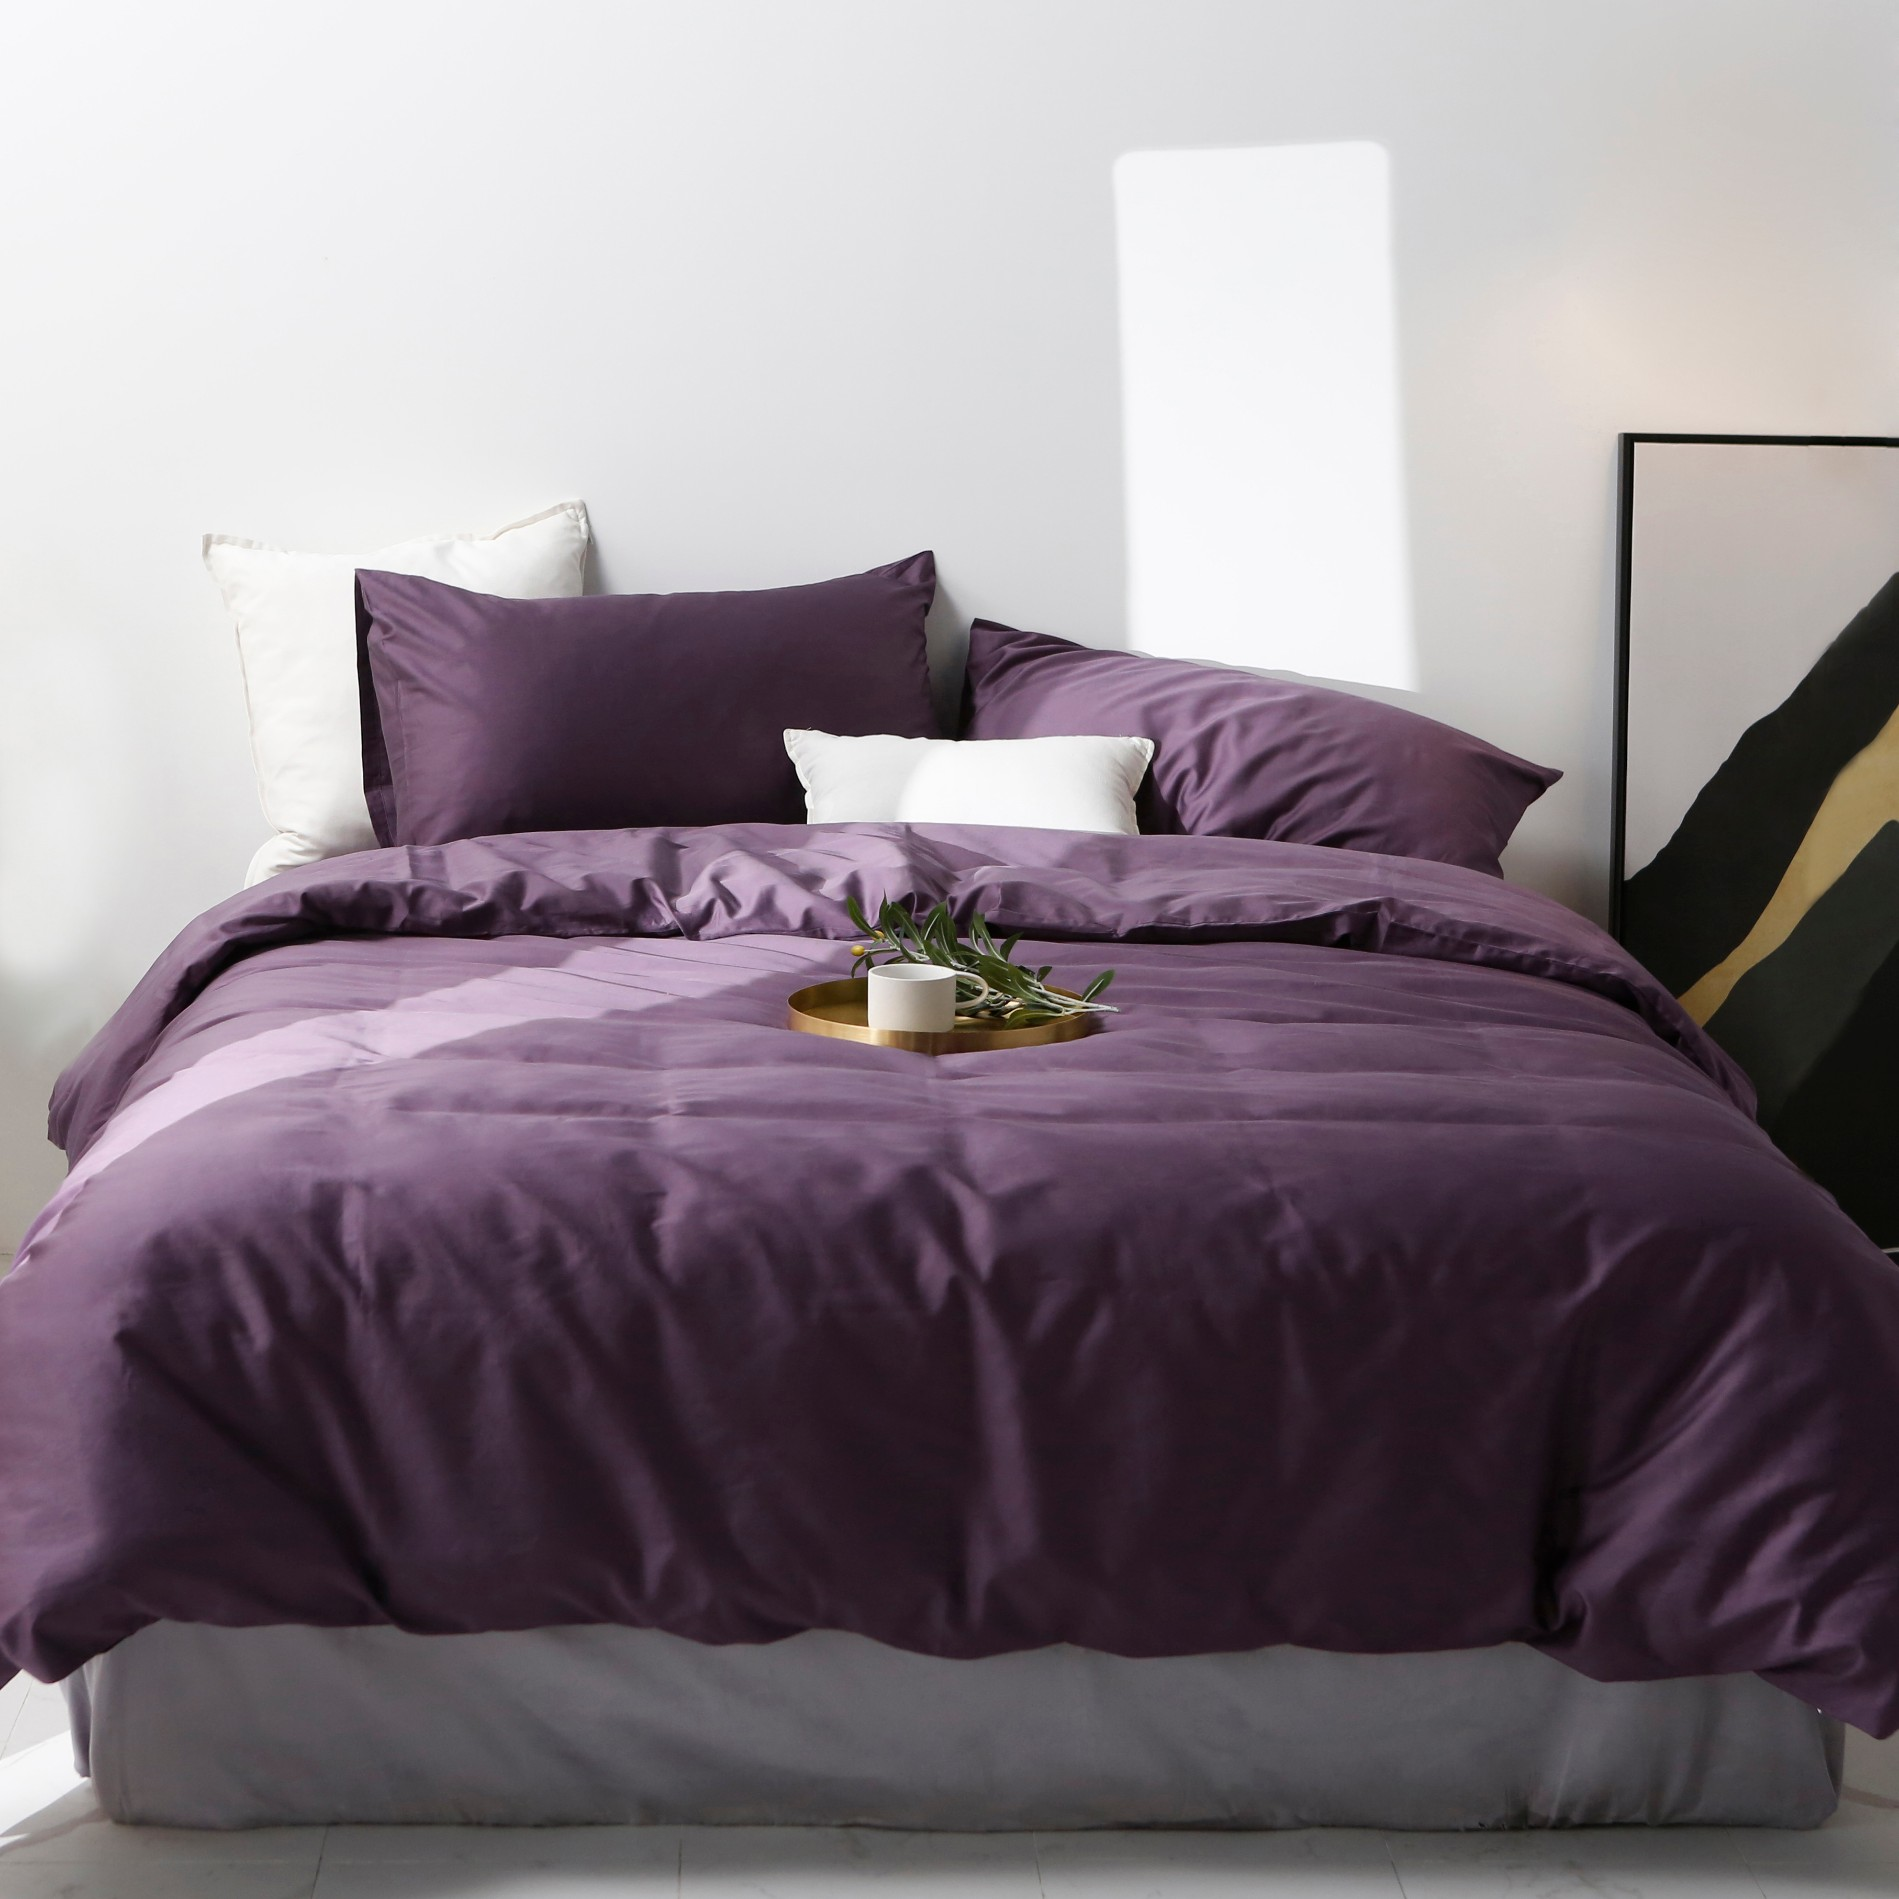 Plain Coloured Cotton Bed Linen Manufacturers, Plain Coloured Cotton Bed Linen Factory, Supply Plain Coloured Cotton Bed Linen